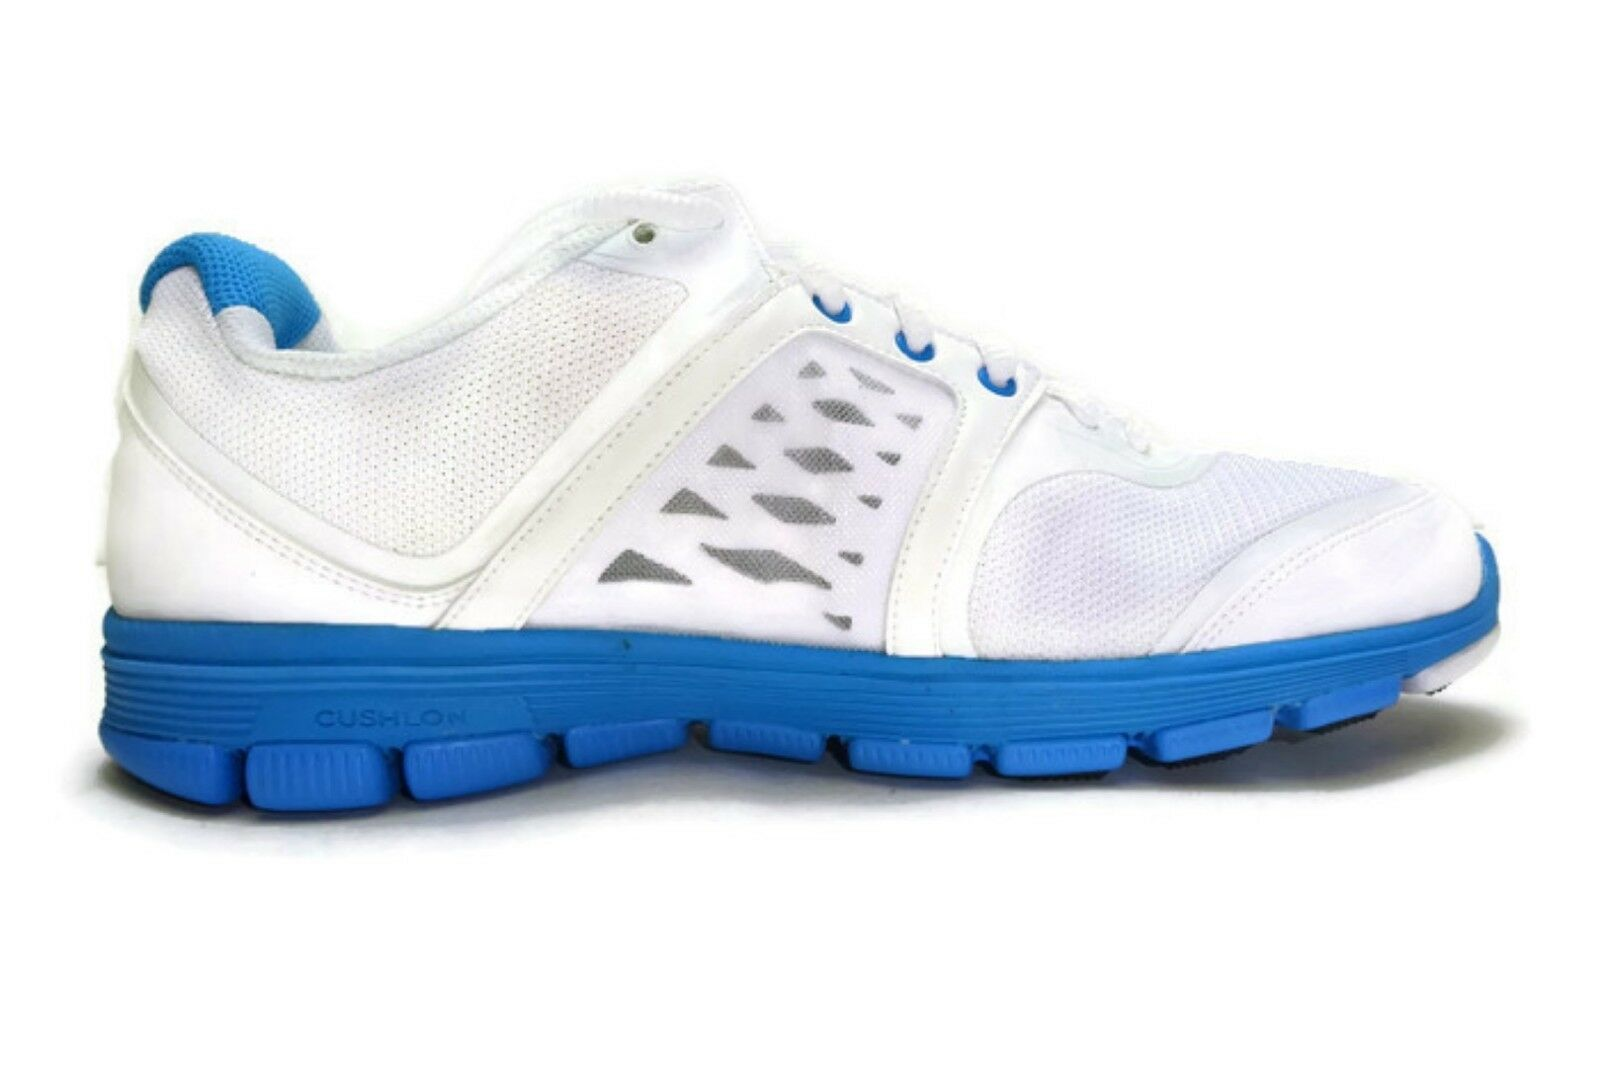 NIKE WOMEN'S, WOMEN'S, WOMEN'S, NIKE FREE XT MOTION FIT Runnig shoes White bluee 6 c0db8e